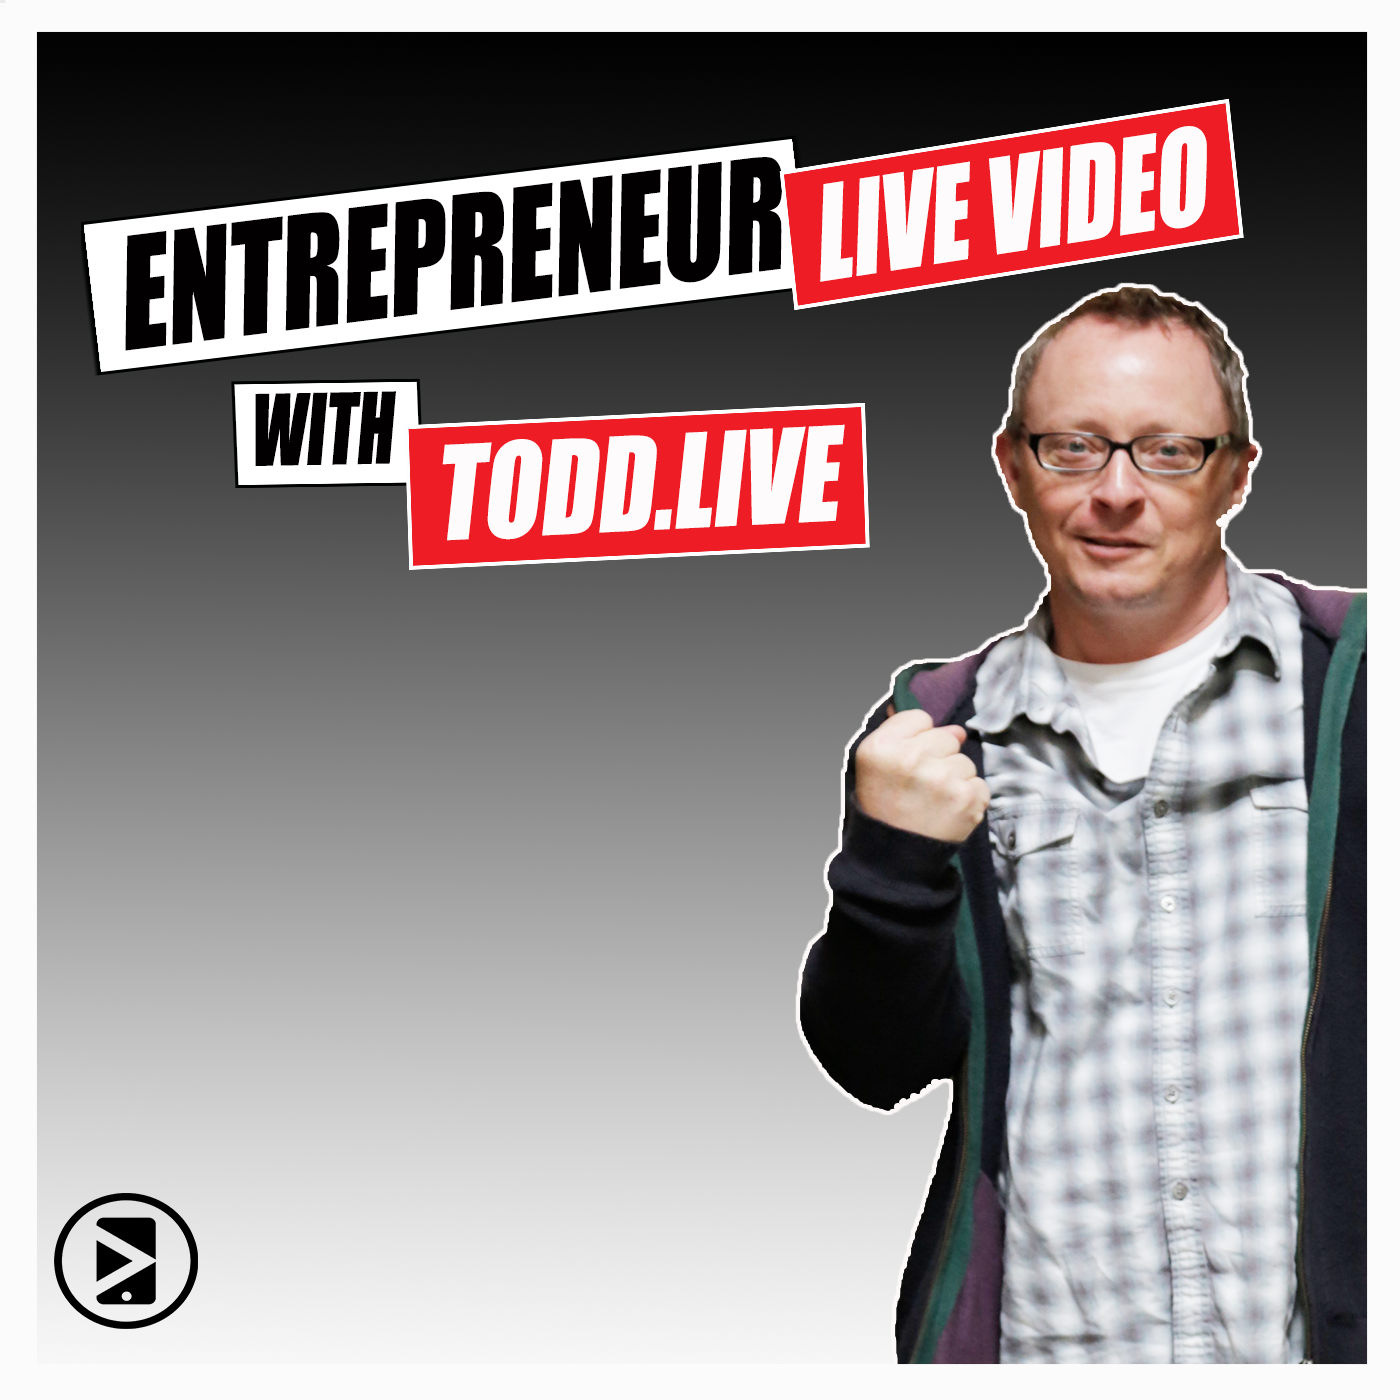 Entrepreneur Live Video with Todd.LIVE - Social Media and Live Stream Talk show art